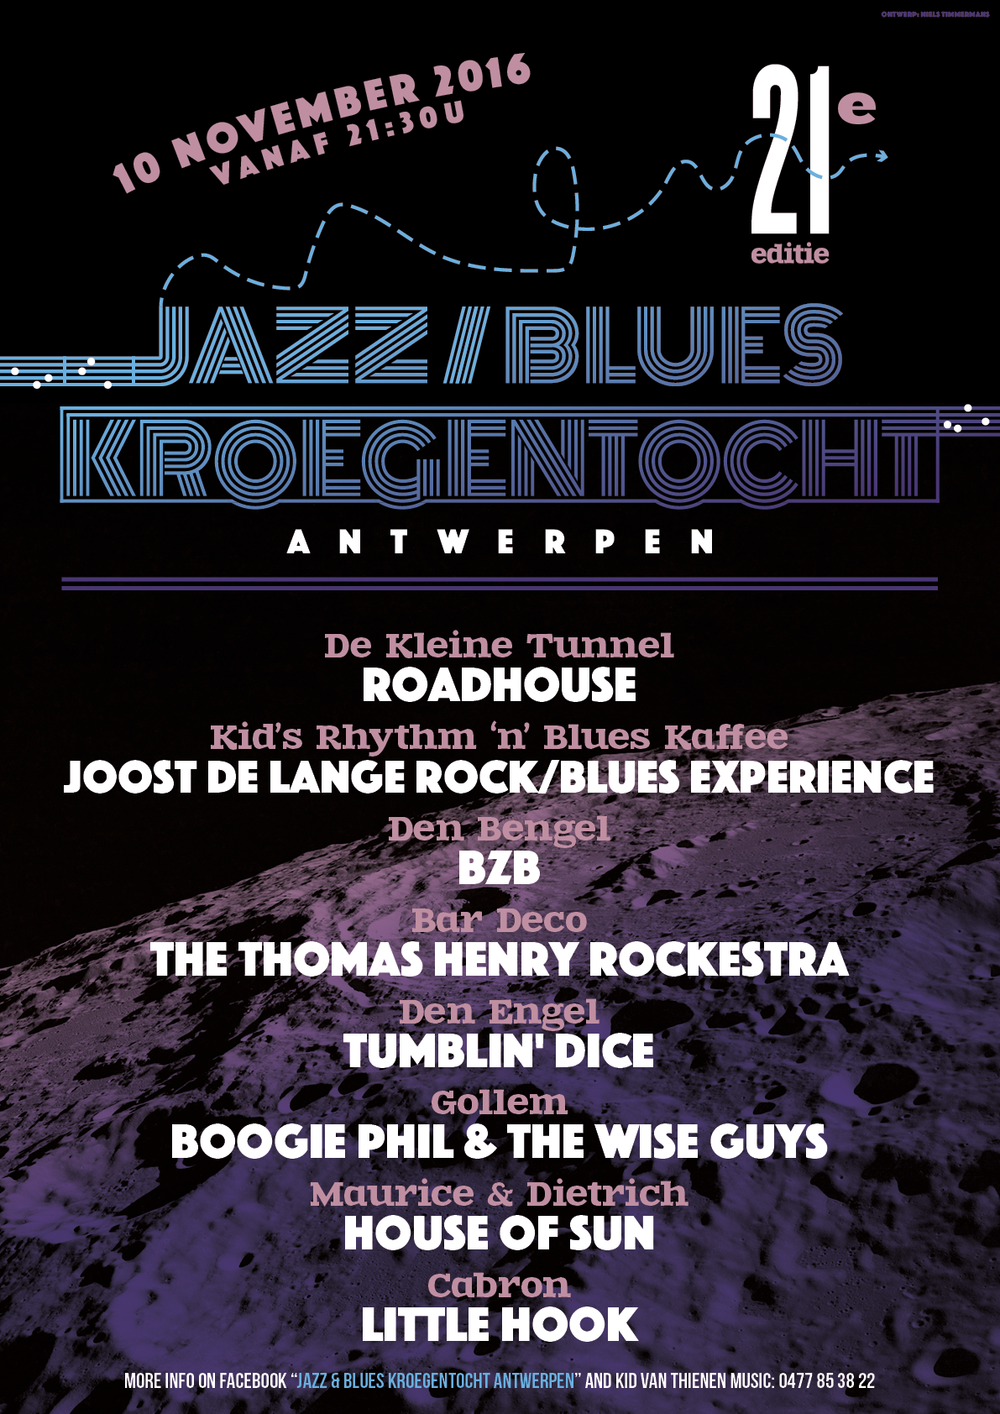 Jazz & Blues Kroegentocht 2016